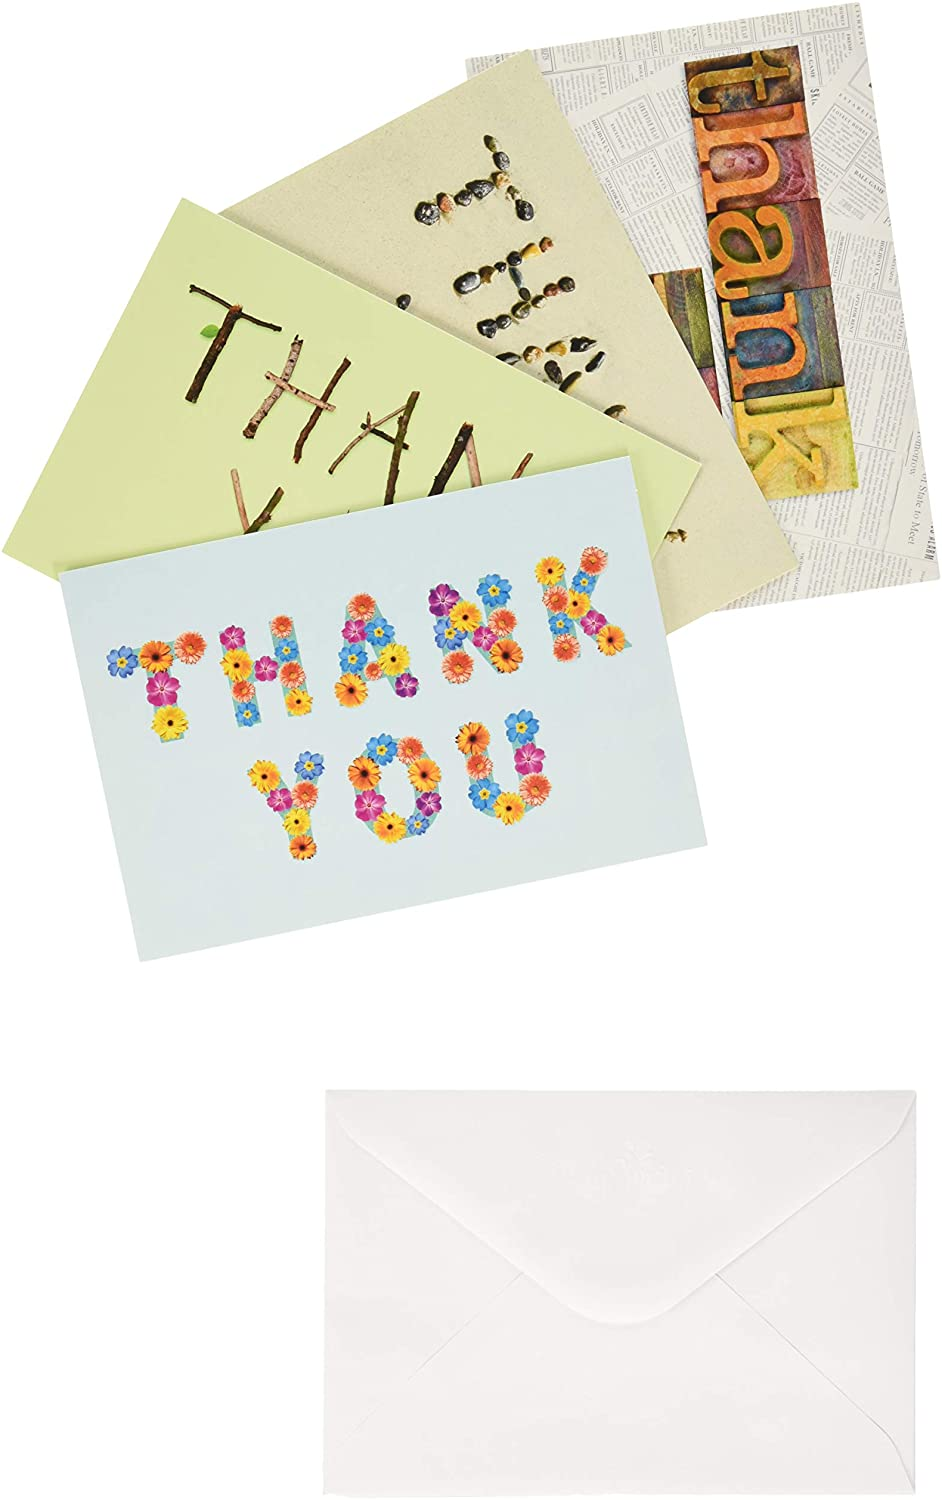 DaySpring - Thank You - Many Blessings - 12 Boxed Cards, KJV (74880)